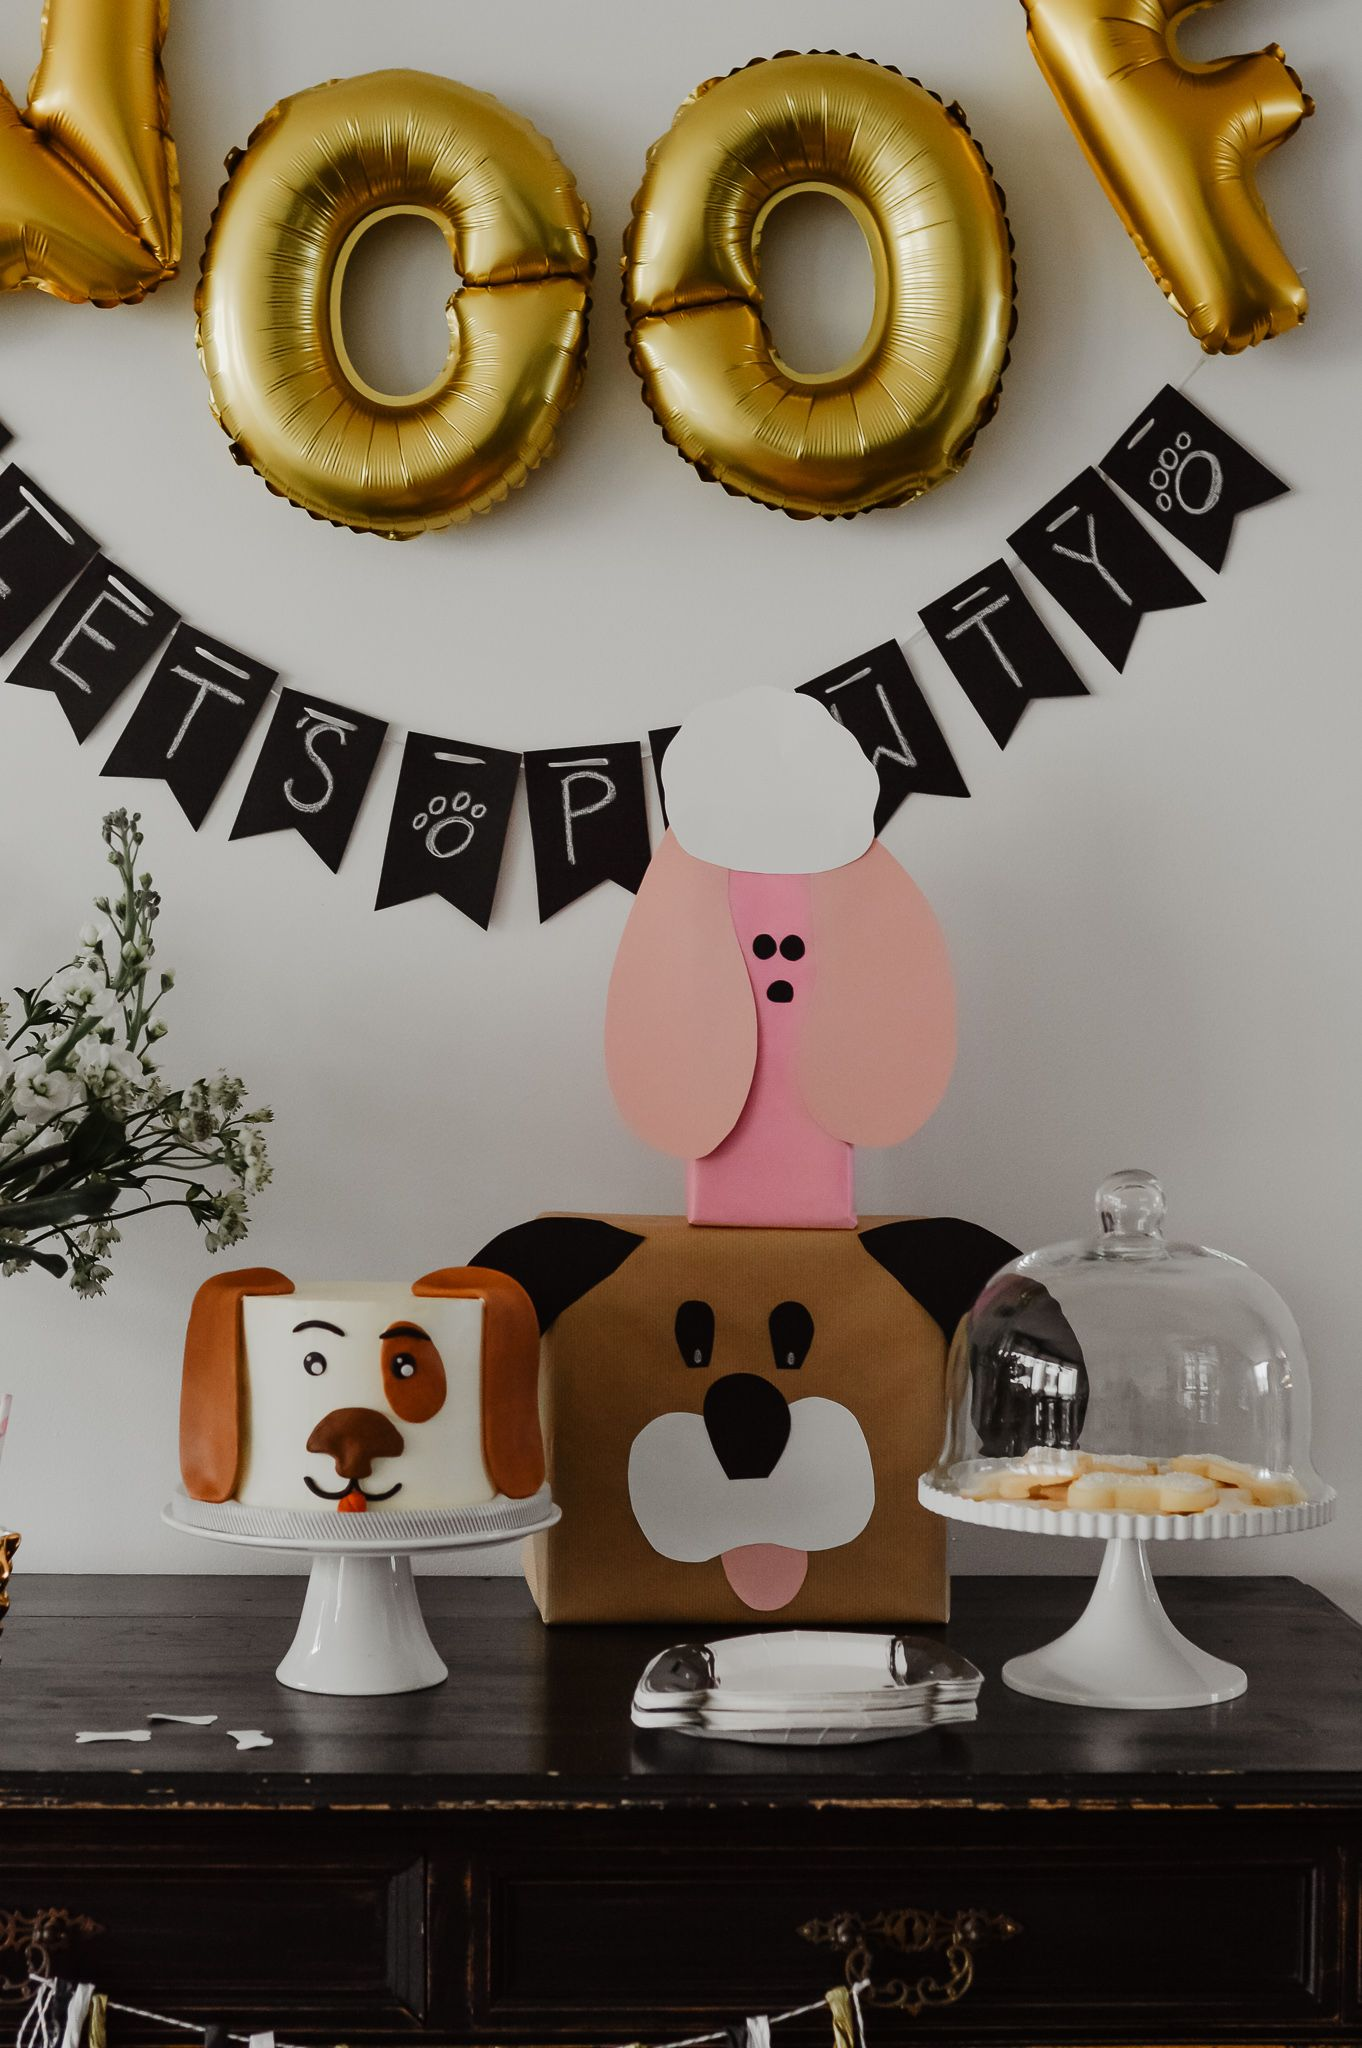 Woof The Ultimate Diy Puppy Pawty For Your Toddler With Dog Themed Cake Tips And Inspirat Dog Themed Birthday Party Dog Birthday Party Puppy Birthday Parties